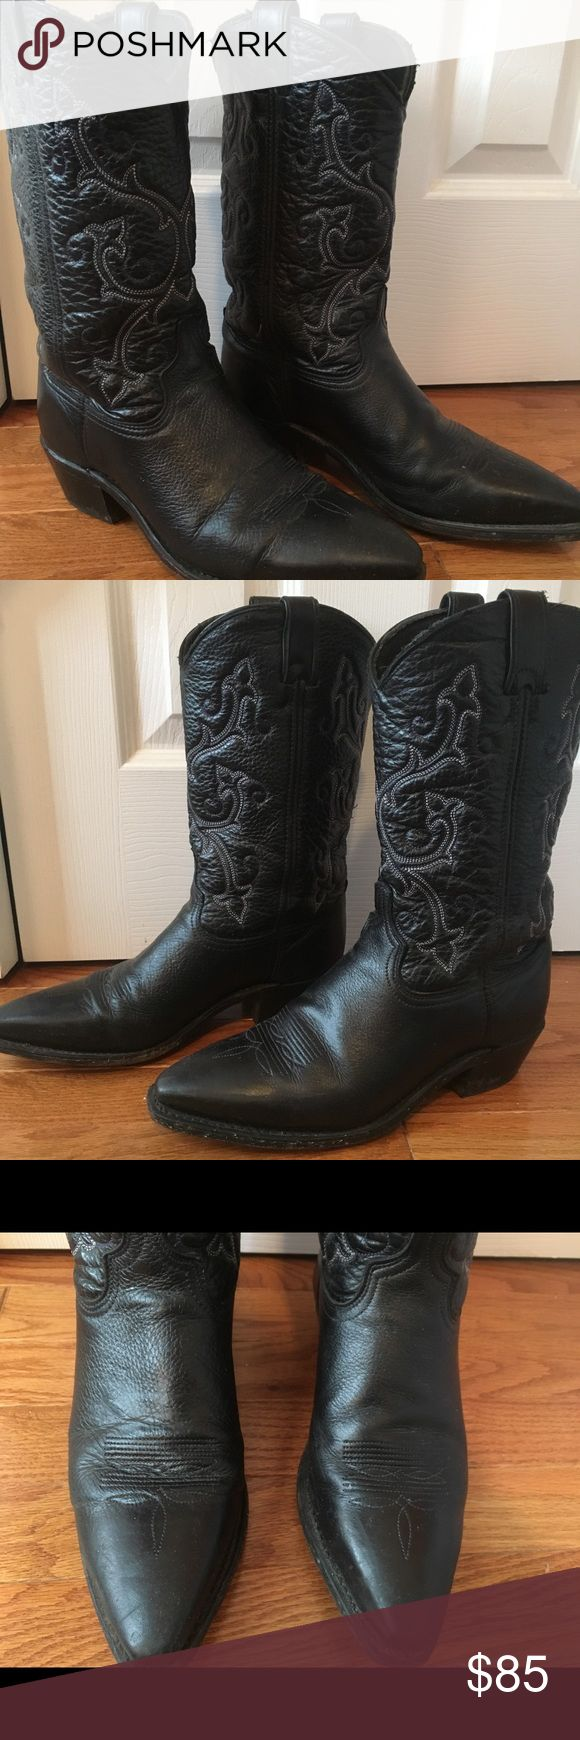 Black Leather Cowboy Boots Genuine leather cowboy boots slightly worn, in fantastic condition! Leather is soft, has beautiful white and dark purple stitching. Size 9. Lucchese Shoes